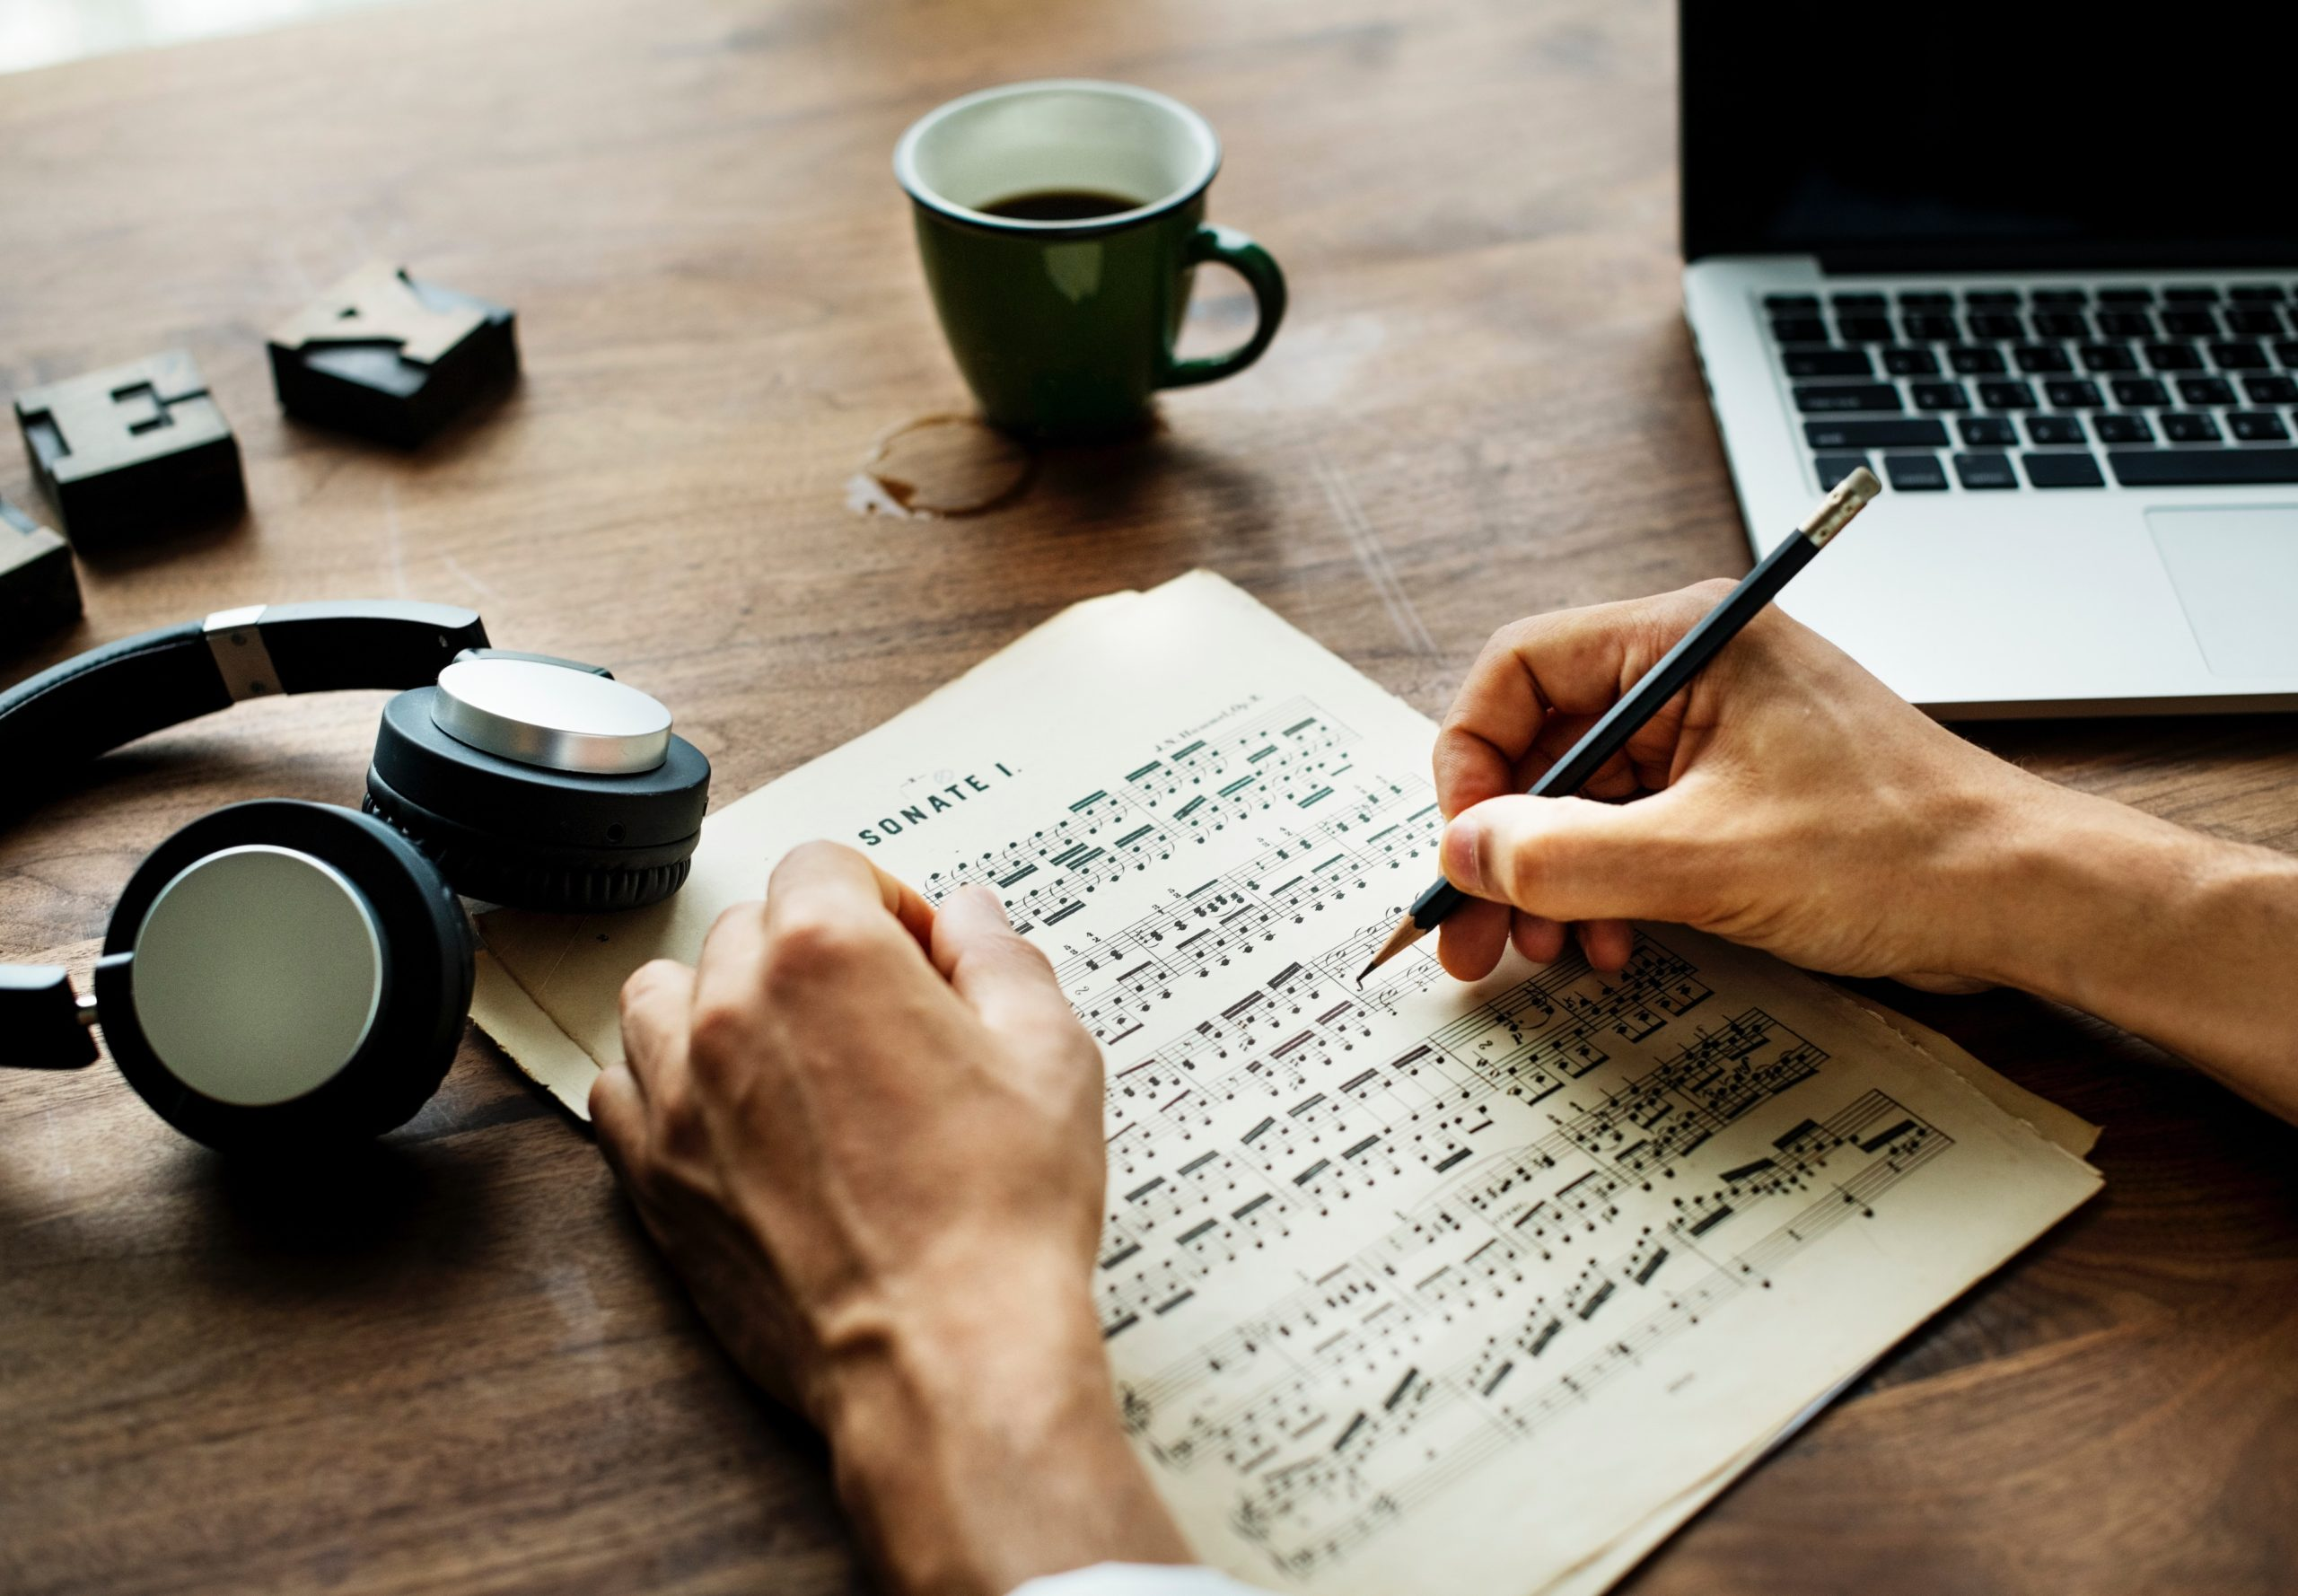 Calling all Composers!